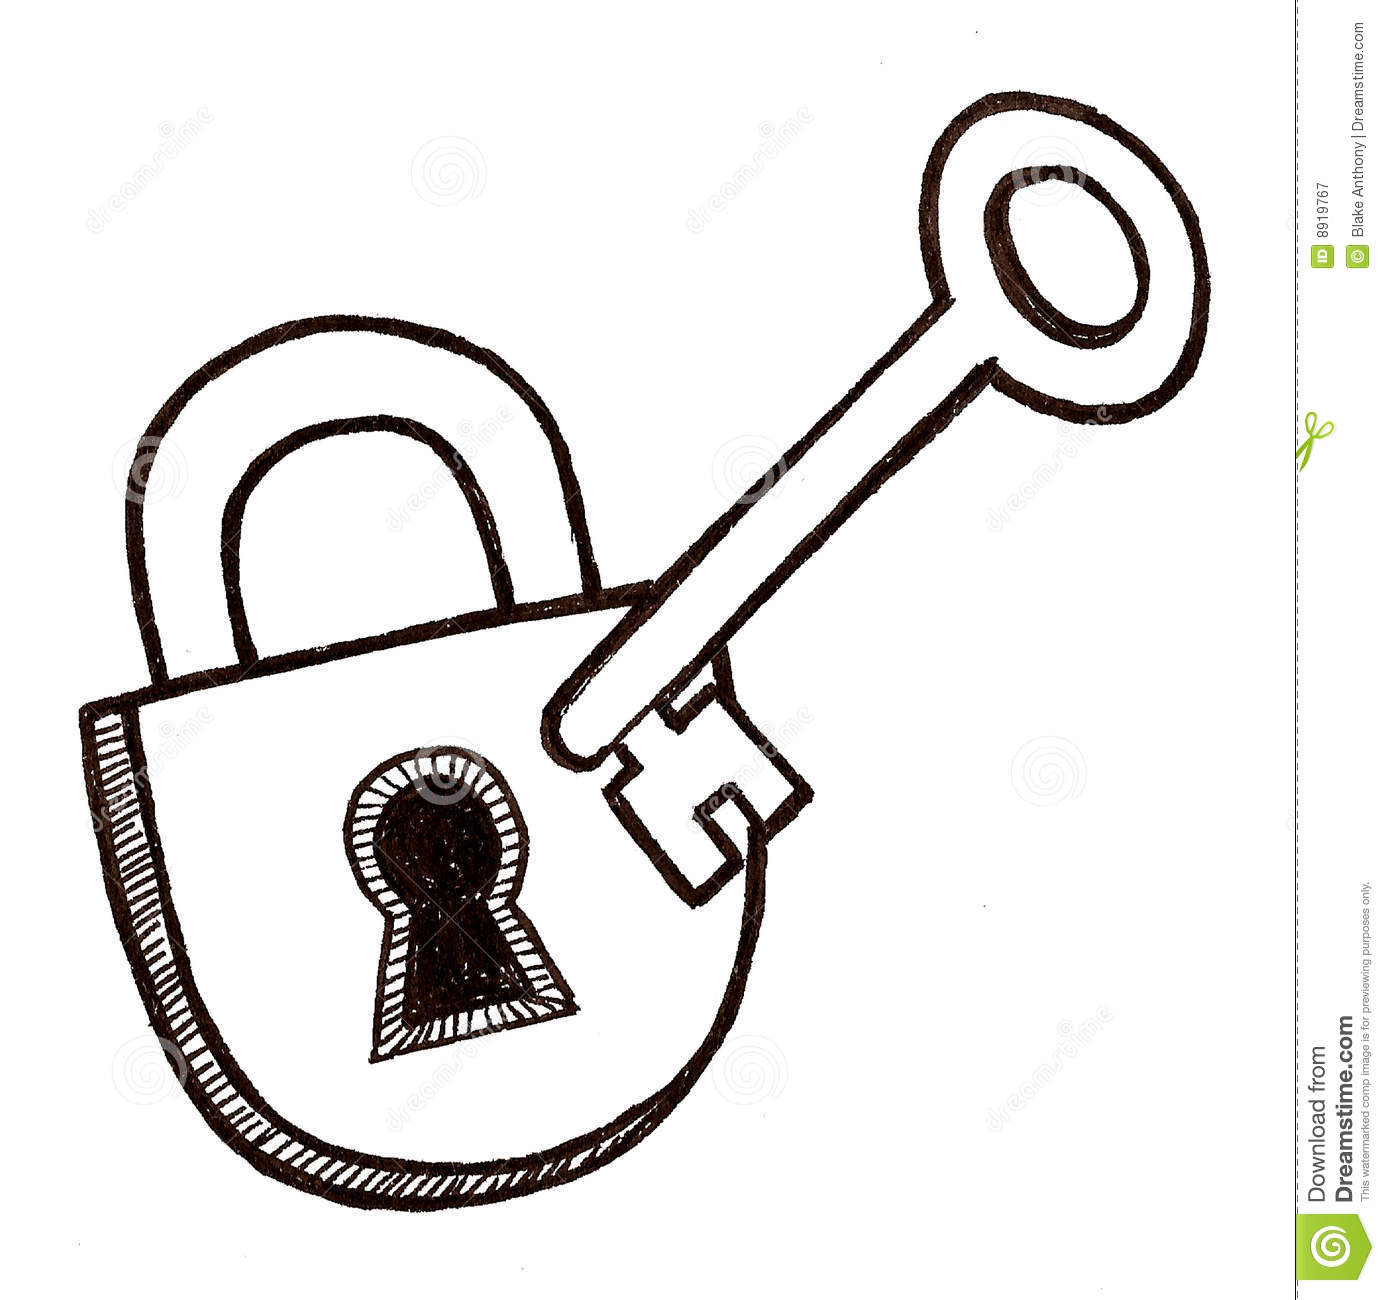 Lock And Key Royalty Free Stock Photography - Image: 8919767